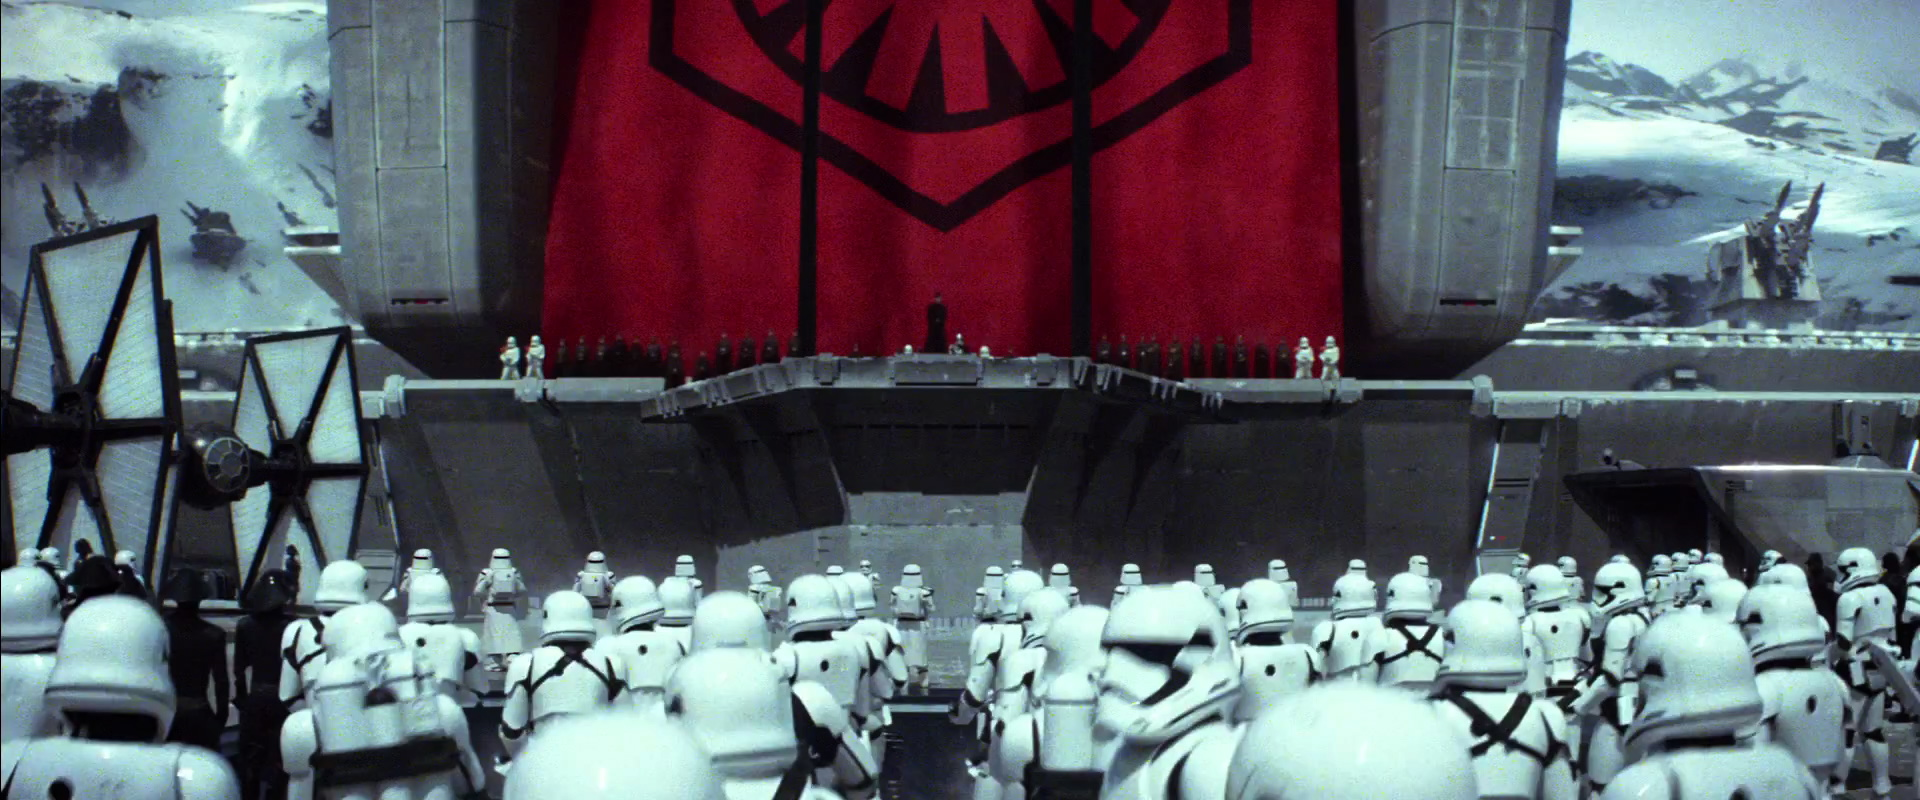 """The Empire also has a new name """"The First Order."""" They also have a new symbol. Who ever is on stage must be important. Lots of speculation on who it is but It's all guesses.  On the left side a black Tie Fighter with white panels that some are calling Inverted Ties or Stealth Ties; I'm just going to call them New Ties until we know for sure."""